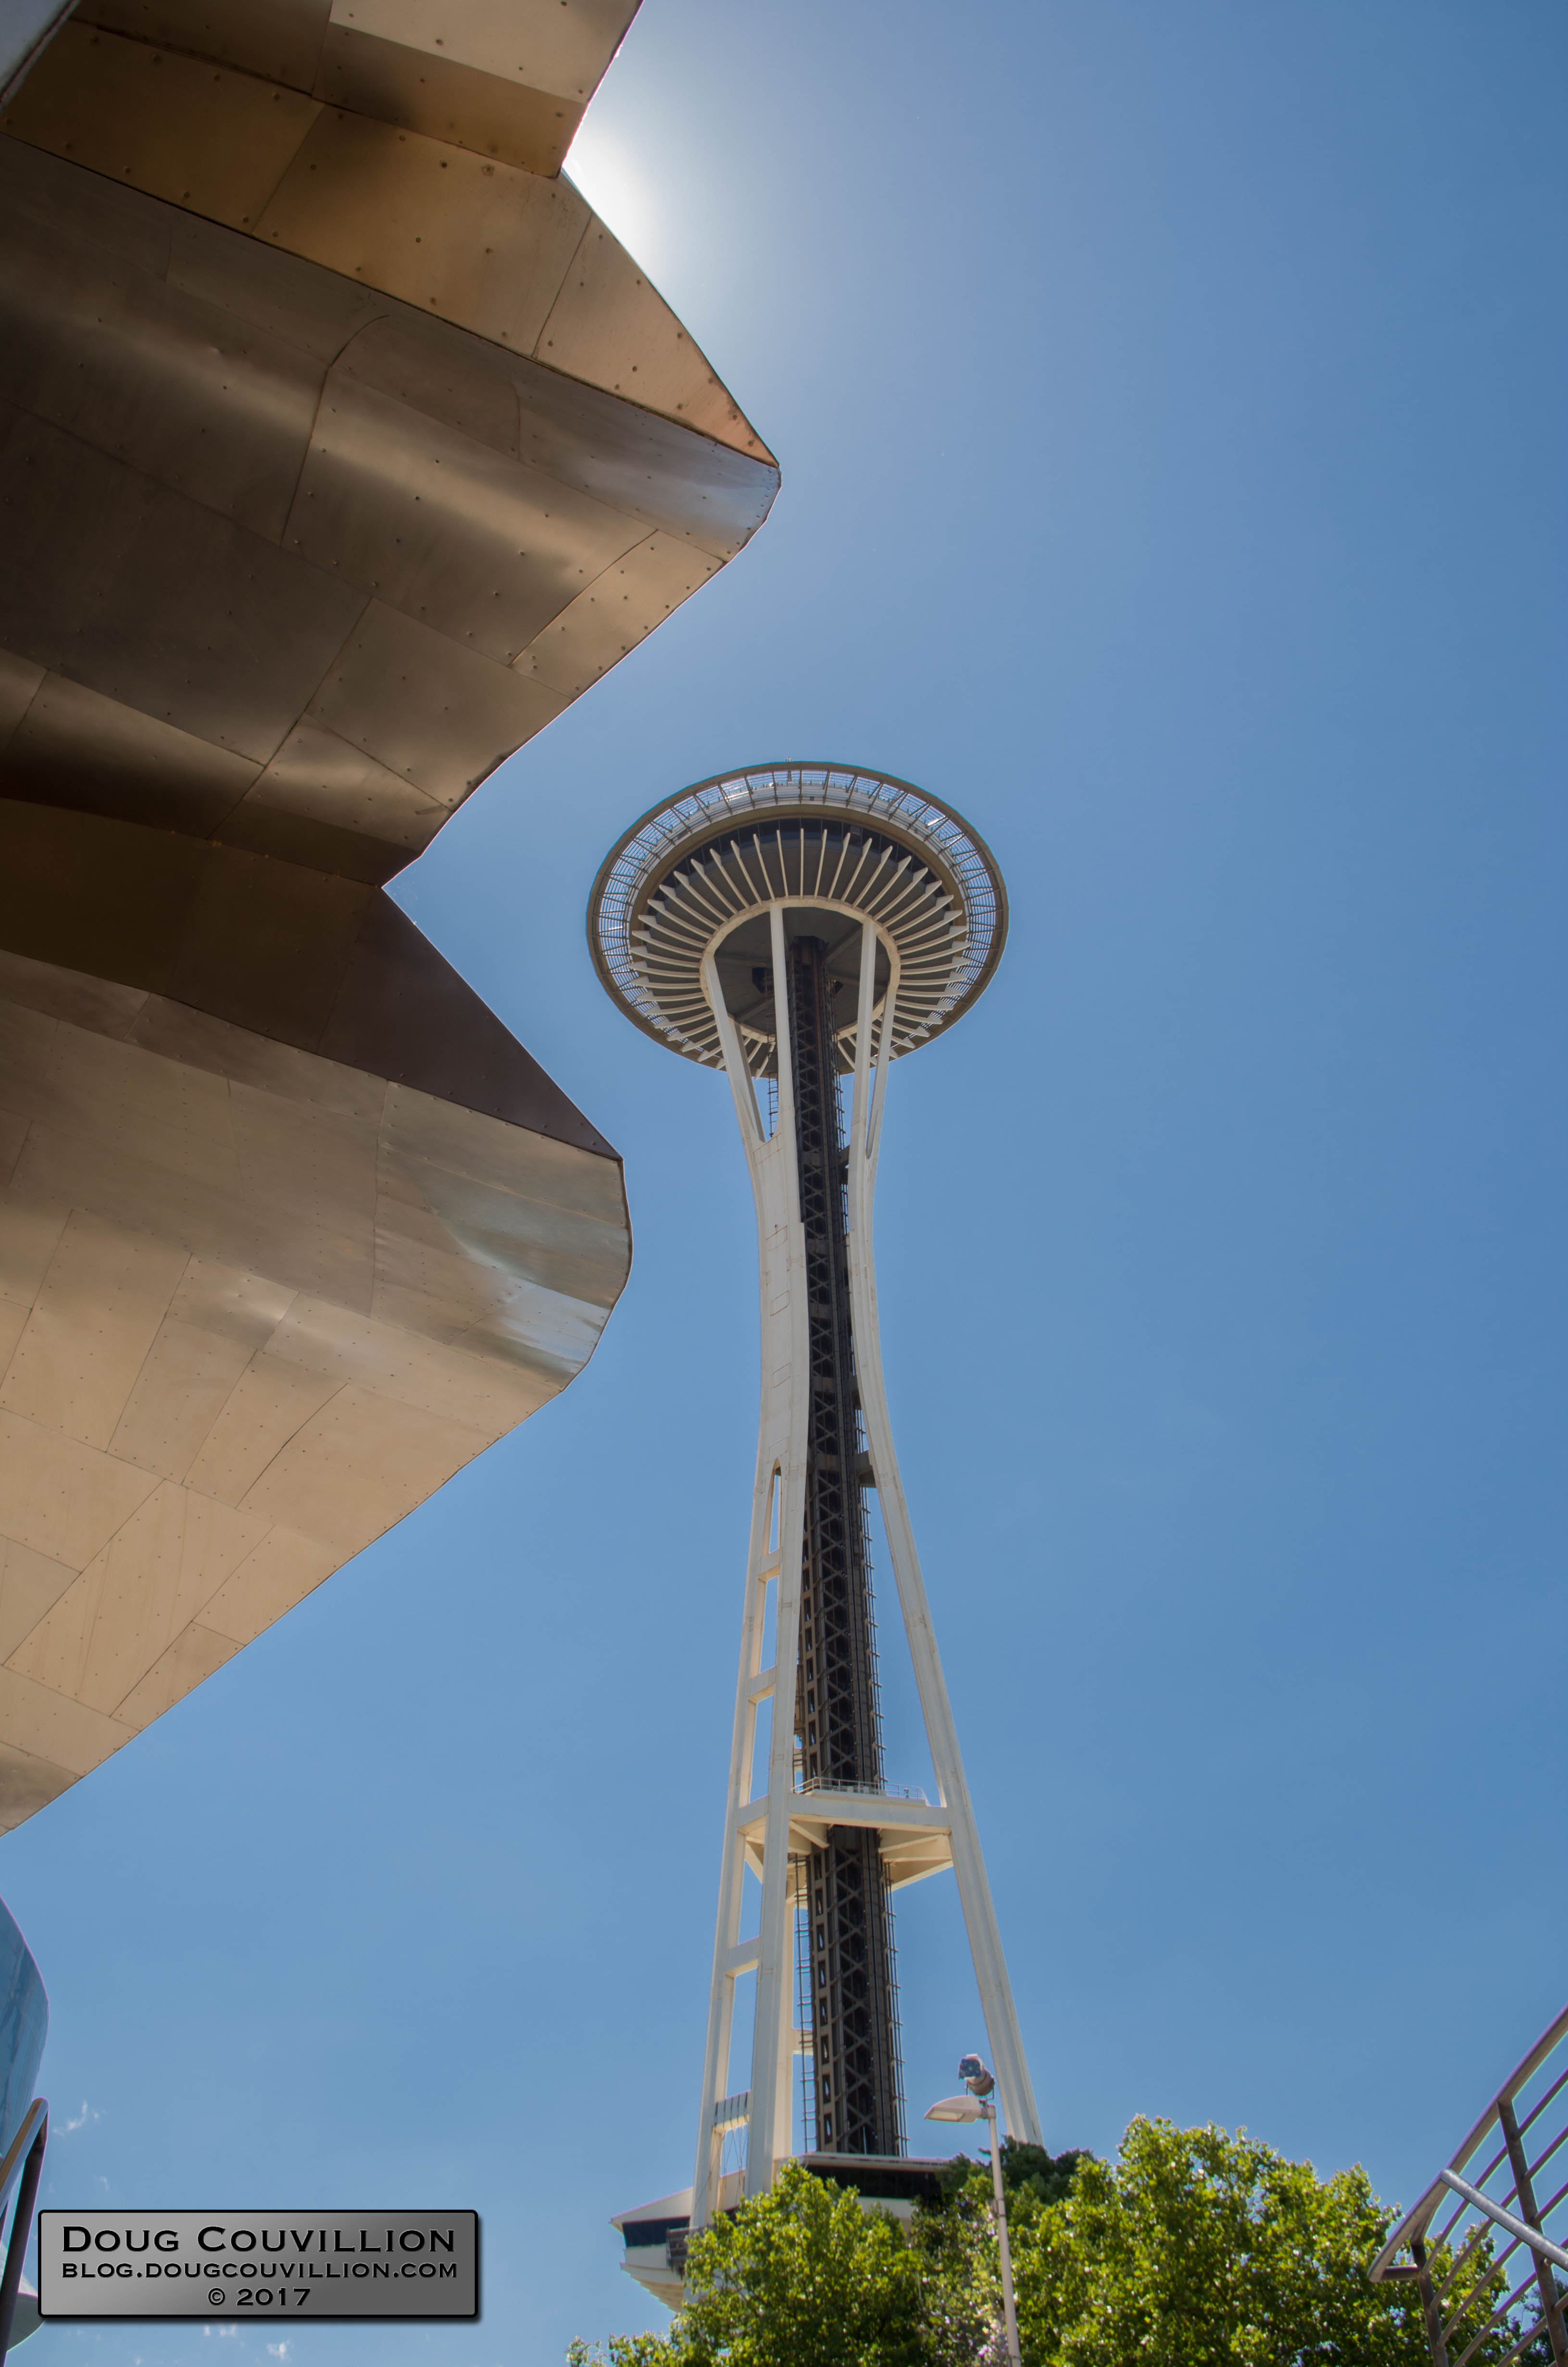 photograph of the Space Needle next to the Museum of Pop Culture in Seattle, Washington by Doug Couvillion